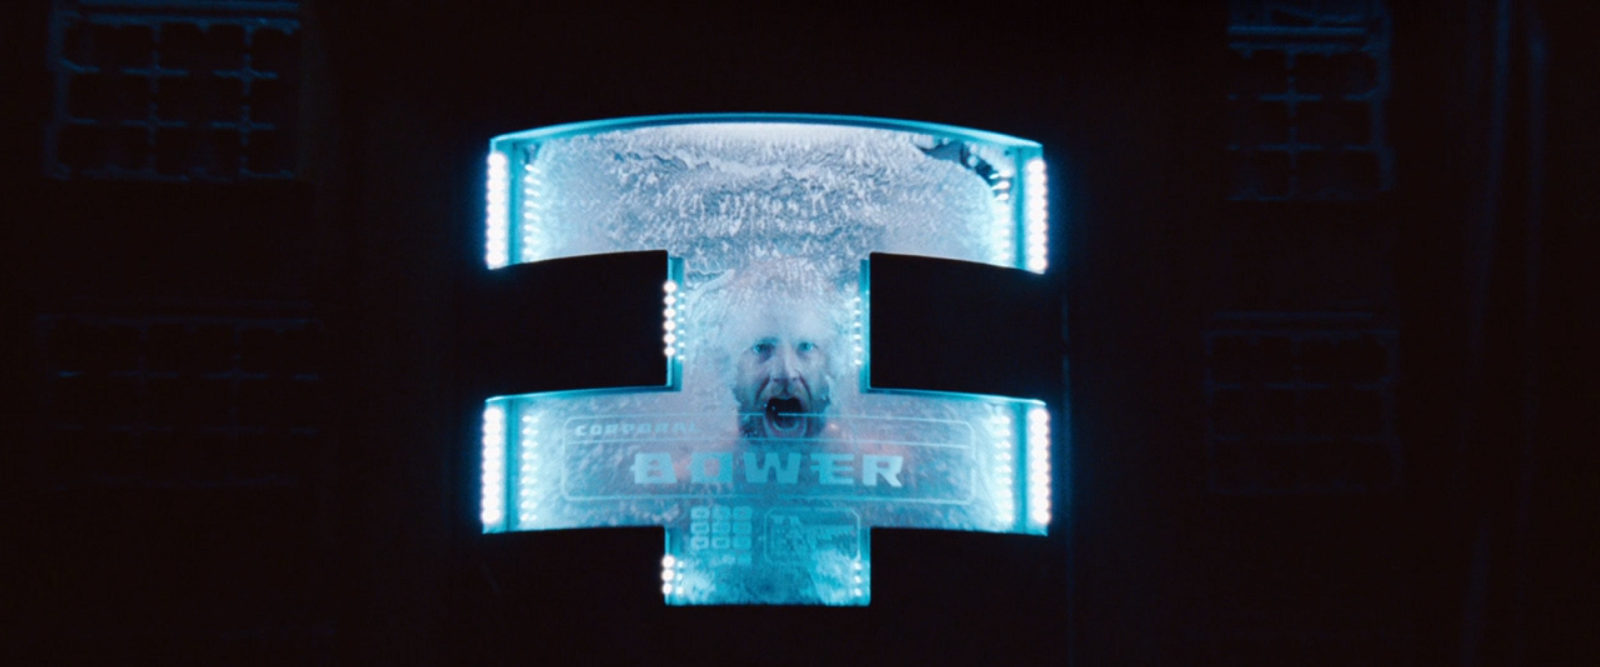 "A man screams from inside a cryogenic freezer labeled ""BOWER"""